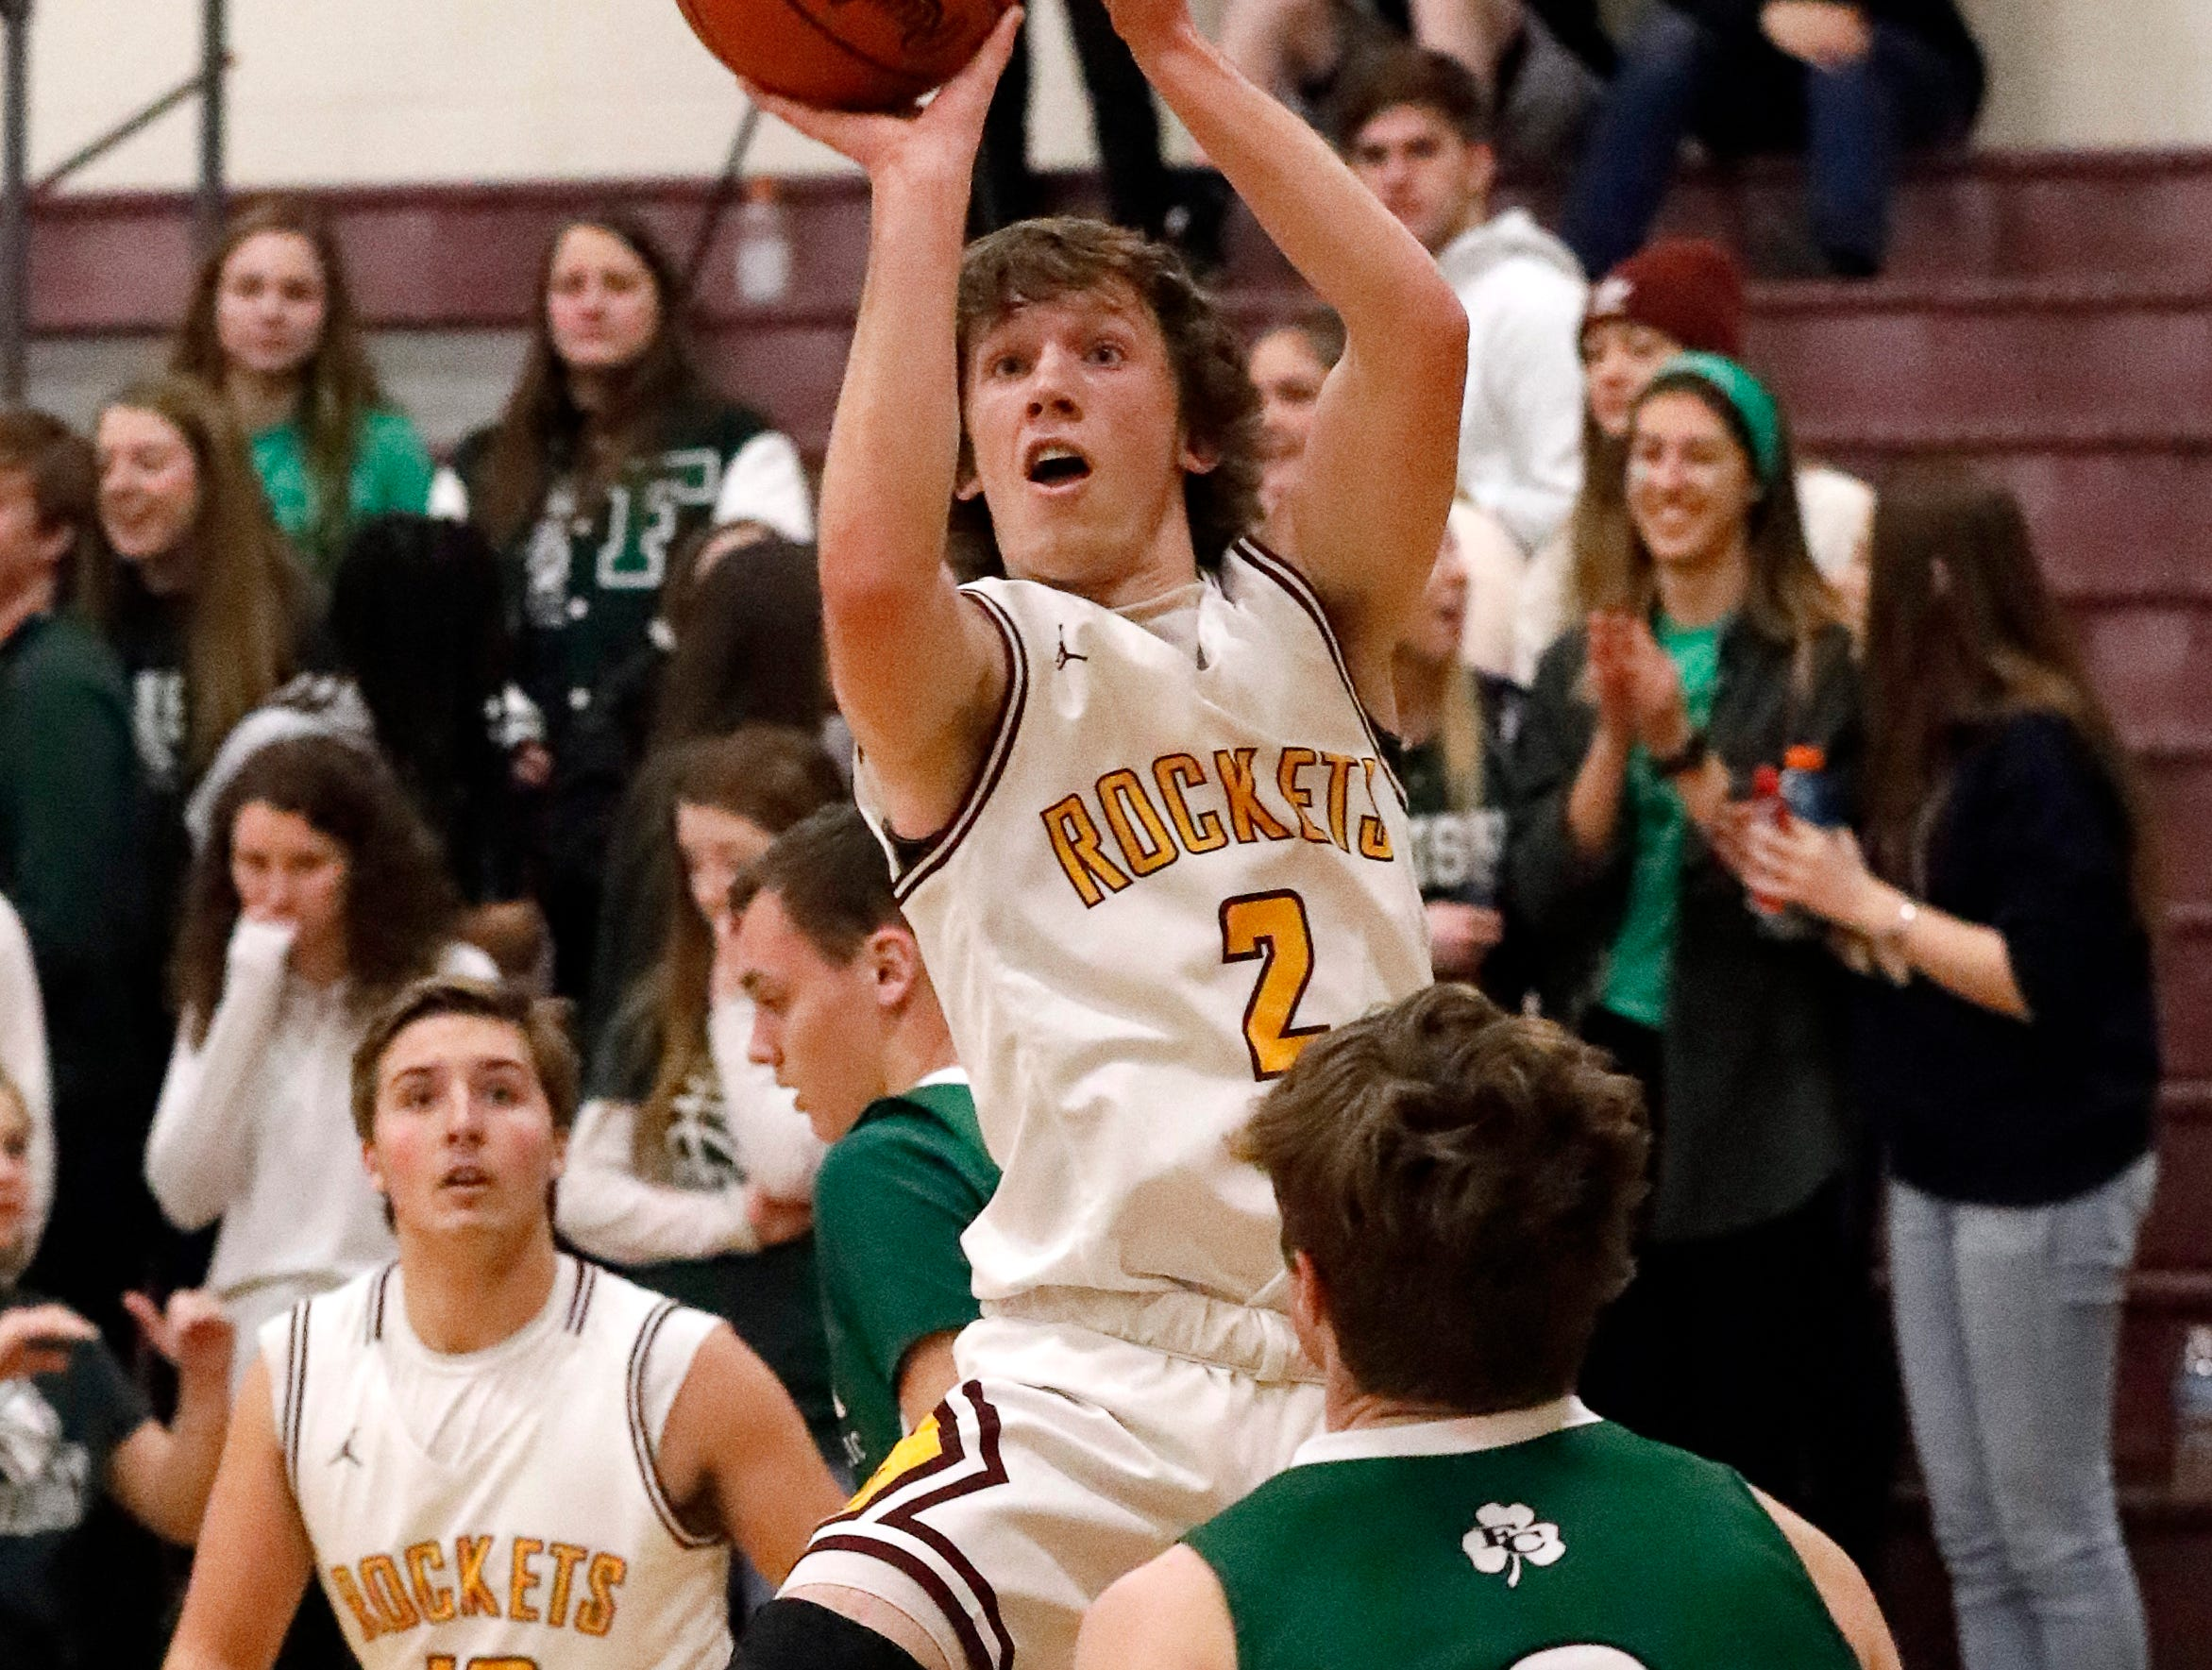 Berne Union's Chase McCartney takes a shot during Tuesday night's game, Jan. 22, 2019, against Fisher Catholic at Berne Union High School in Sugar Grove. The Rockets defeated the Irish 58-49.